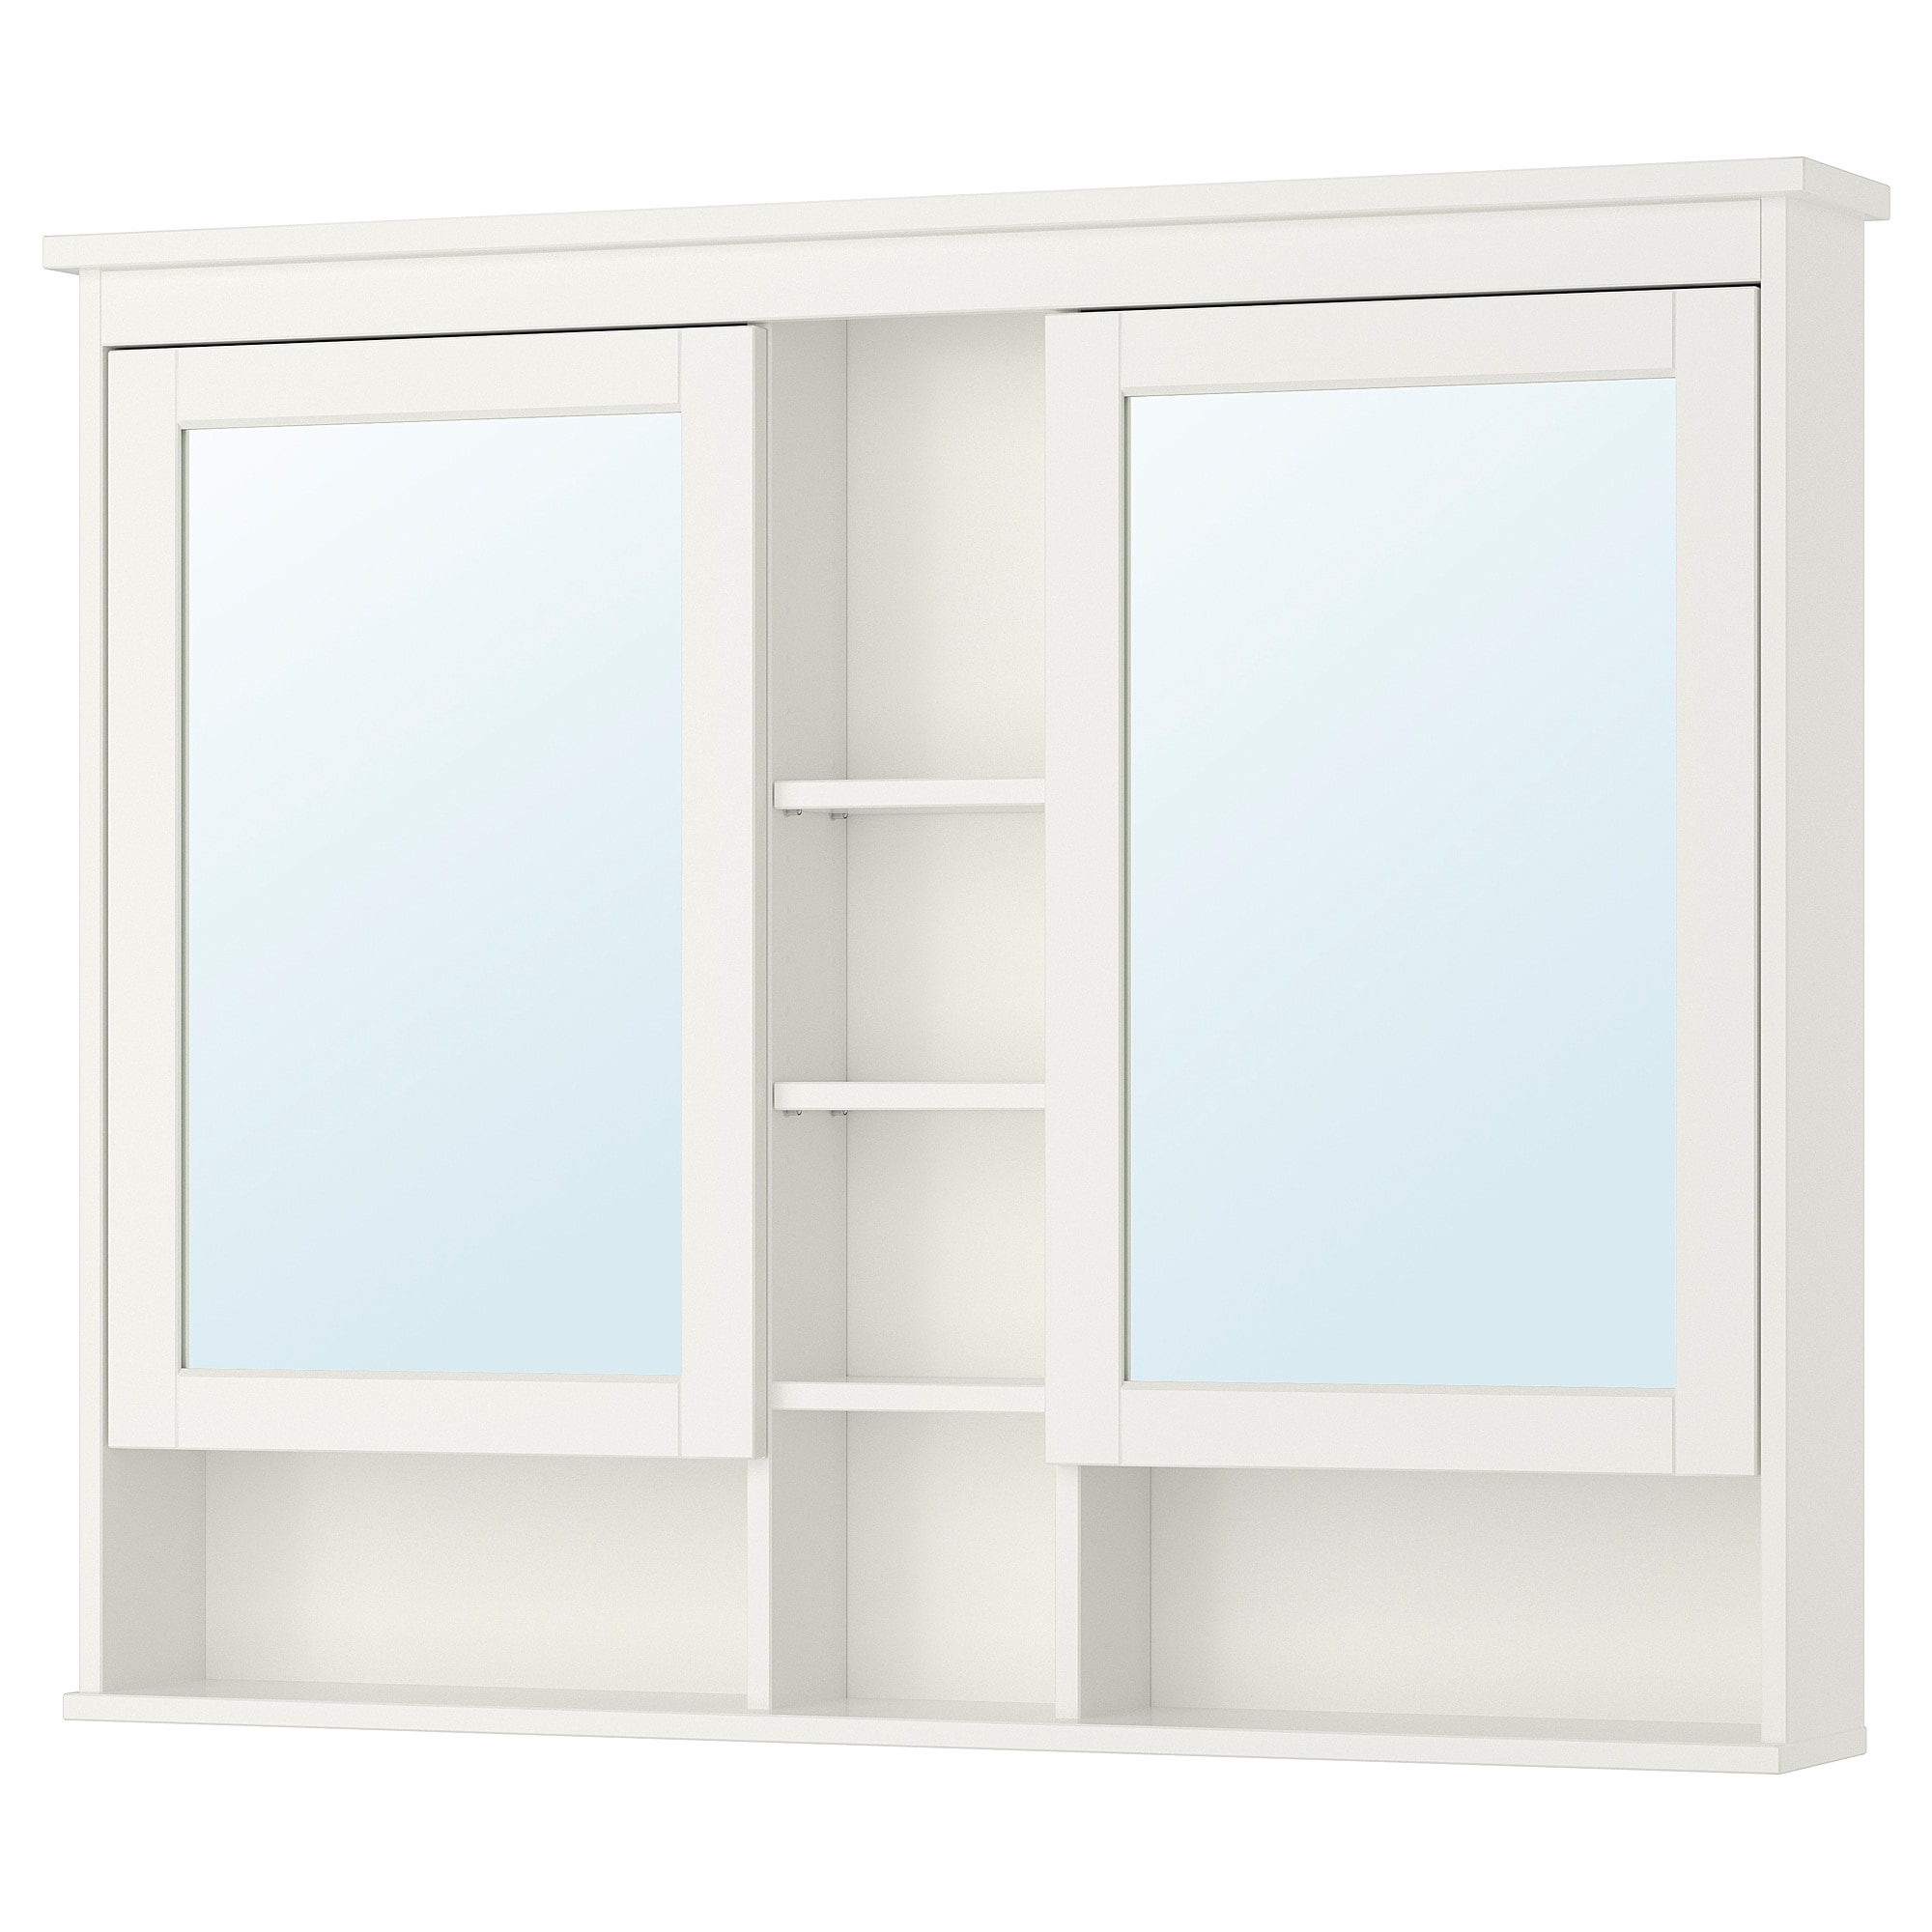 hemnes armoire pharmacie 2 portes miroir blanc ikea. Black Bedroom Furniture Sets. Home Design Ideas